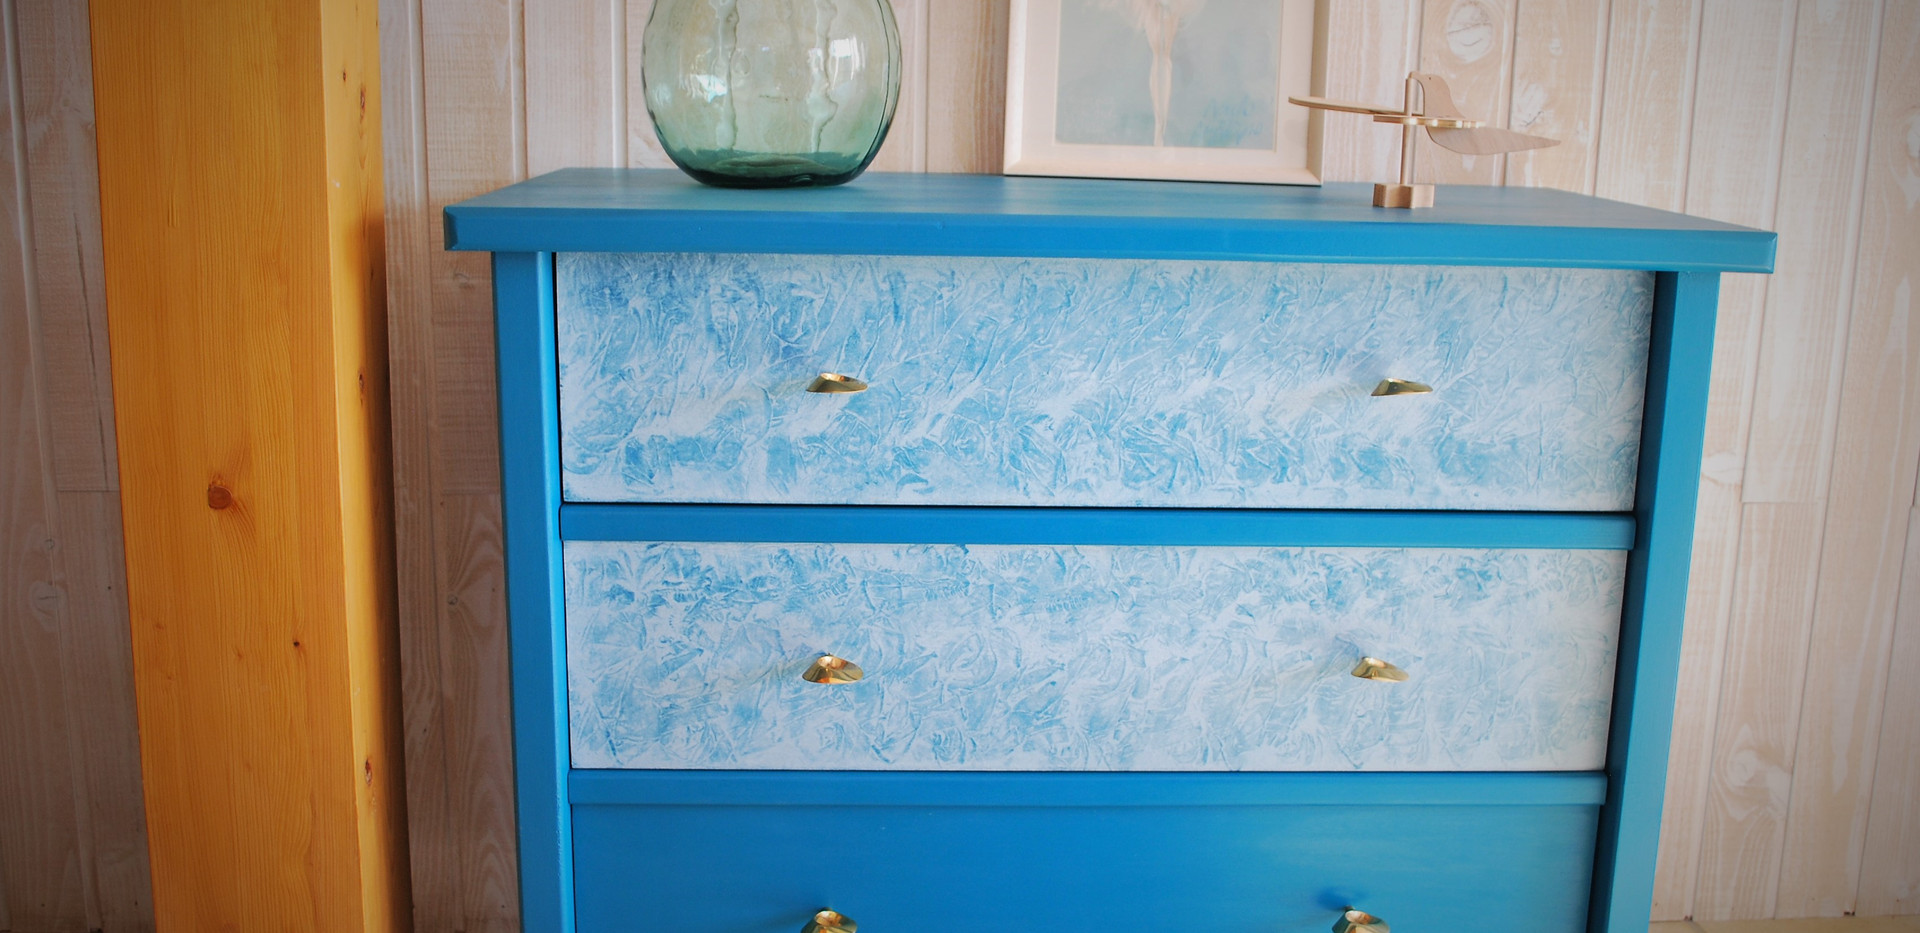 Commode bleu Sarah Lavoine